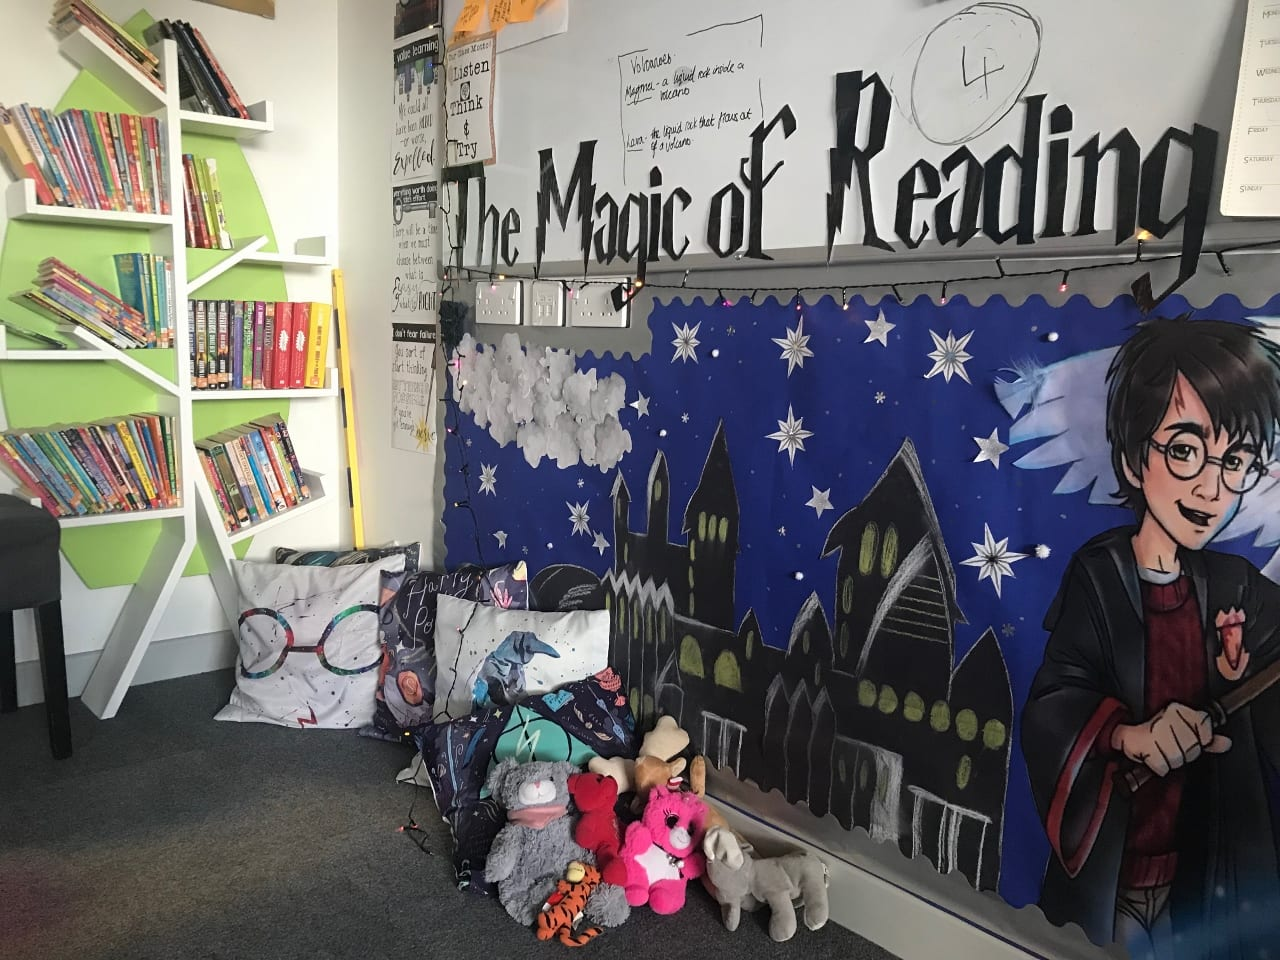 Developing a love of reading for pleasure